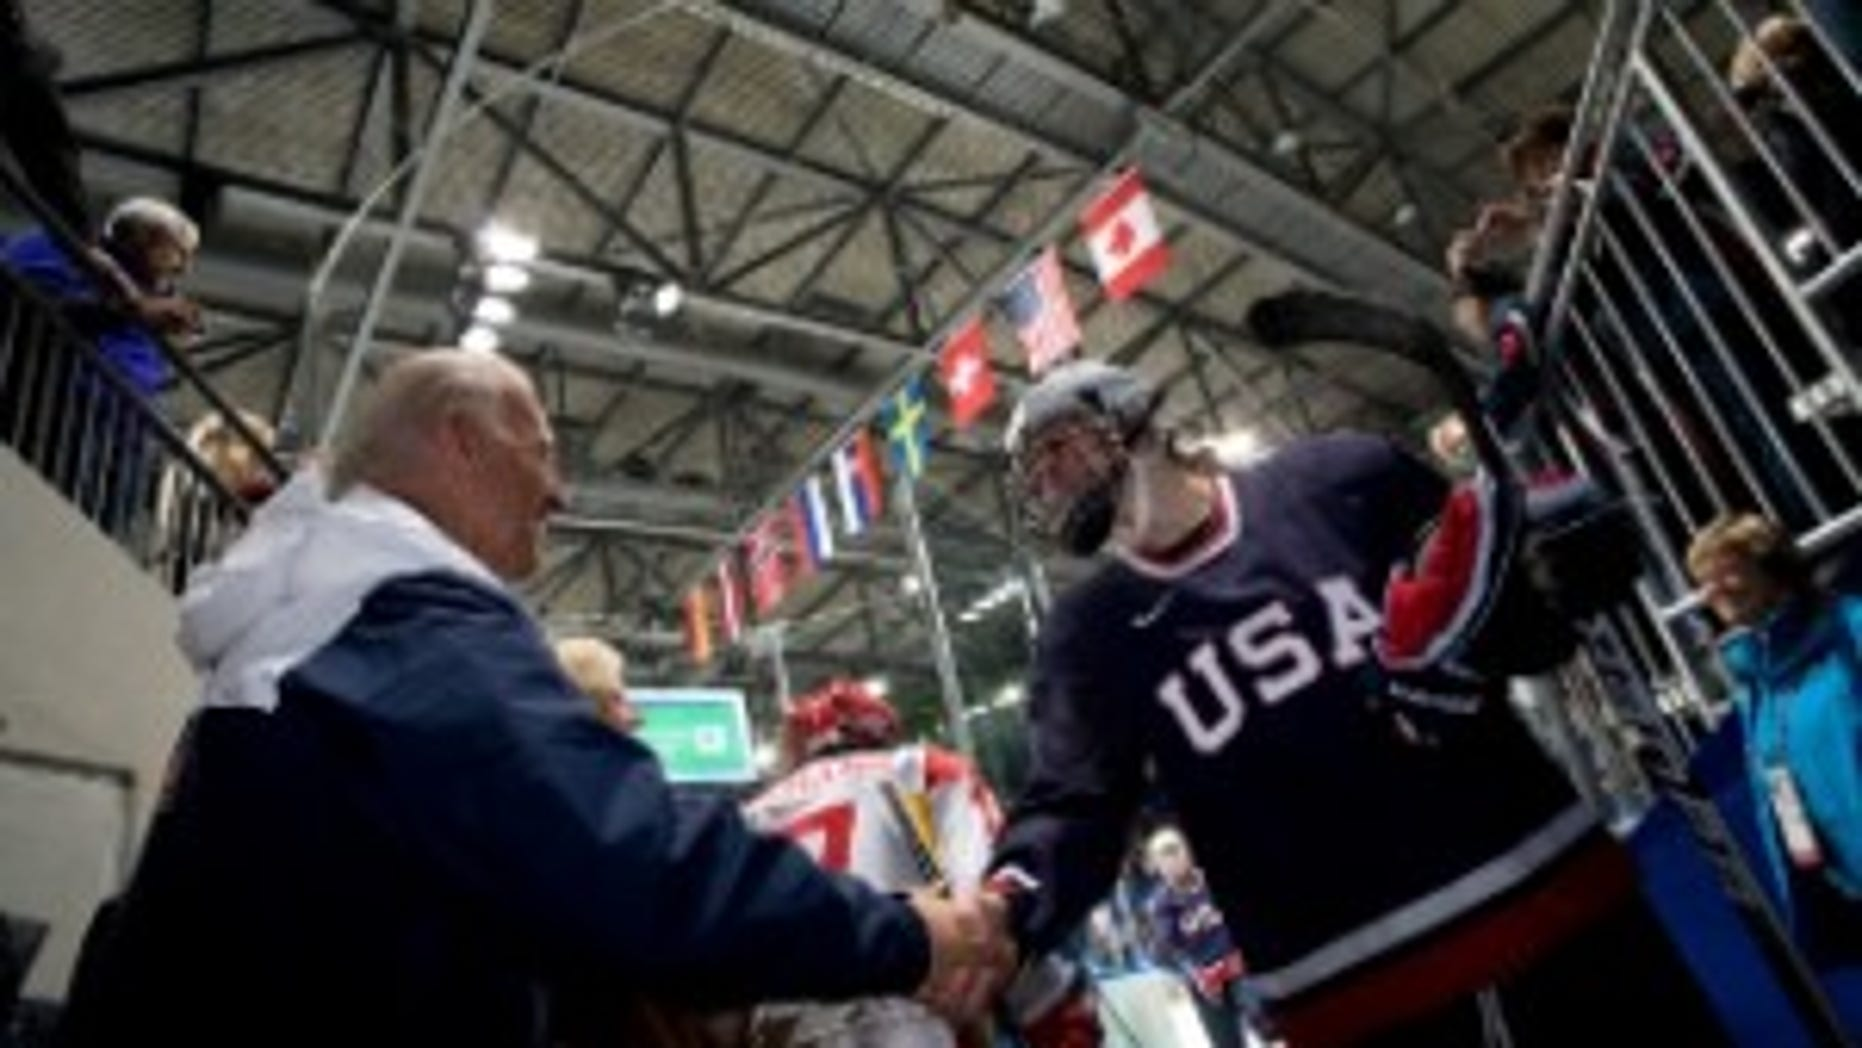 Vice President Joe Biden congratulates Team USA Women's Ice Hockey players after their win against the Peoples Republic of China at the 2010 Winter Olympics in Vancouver, Canada February 14, 2010. (Official White House Photo by David Lienemann)